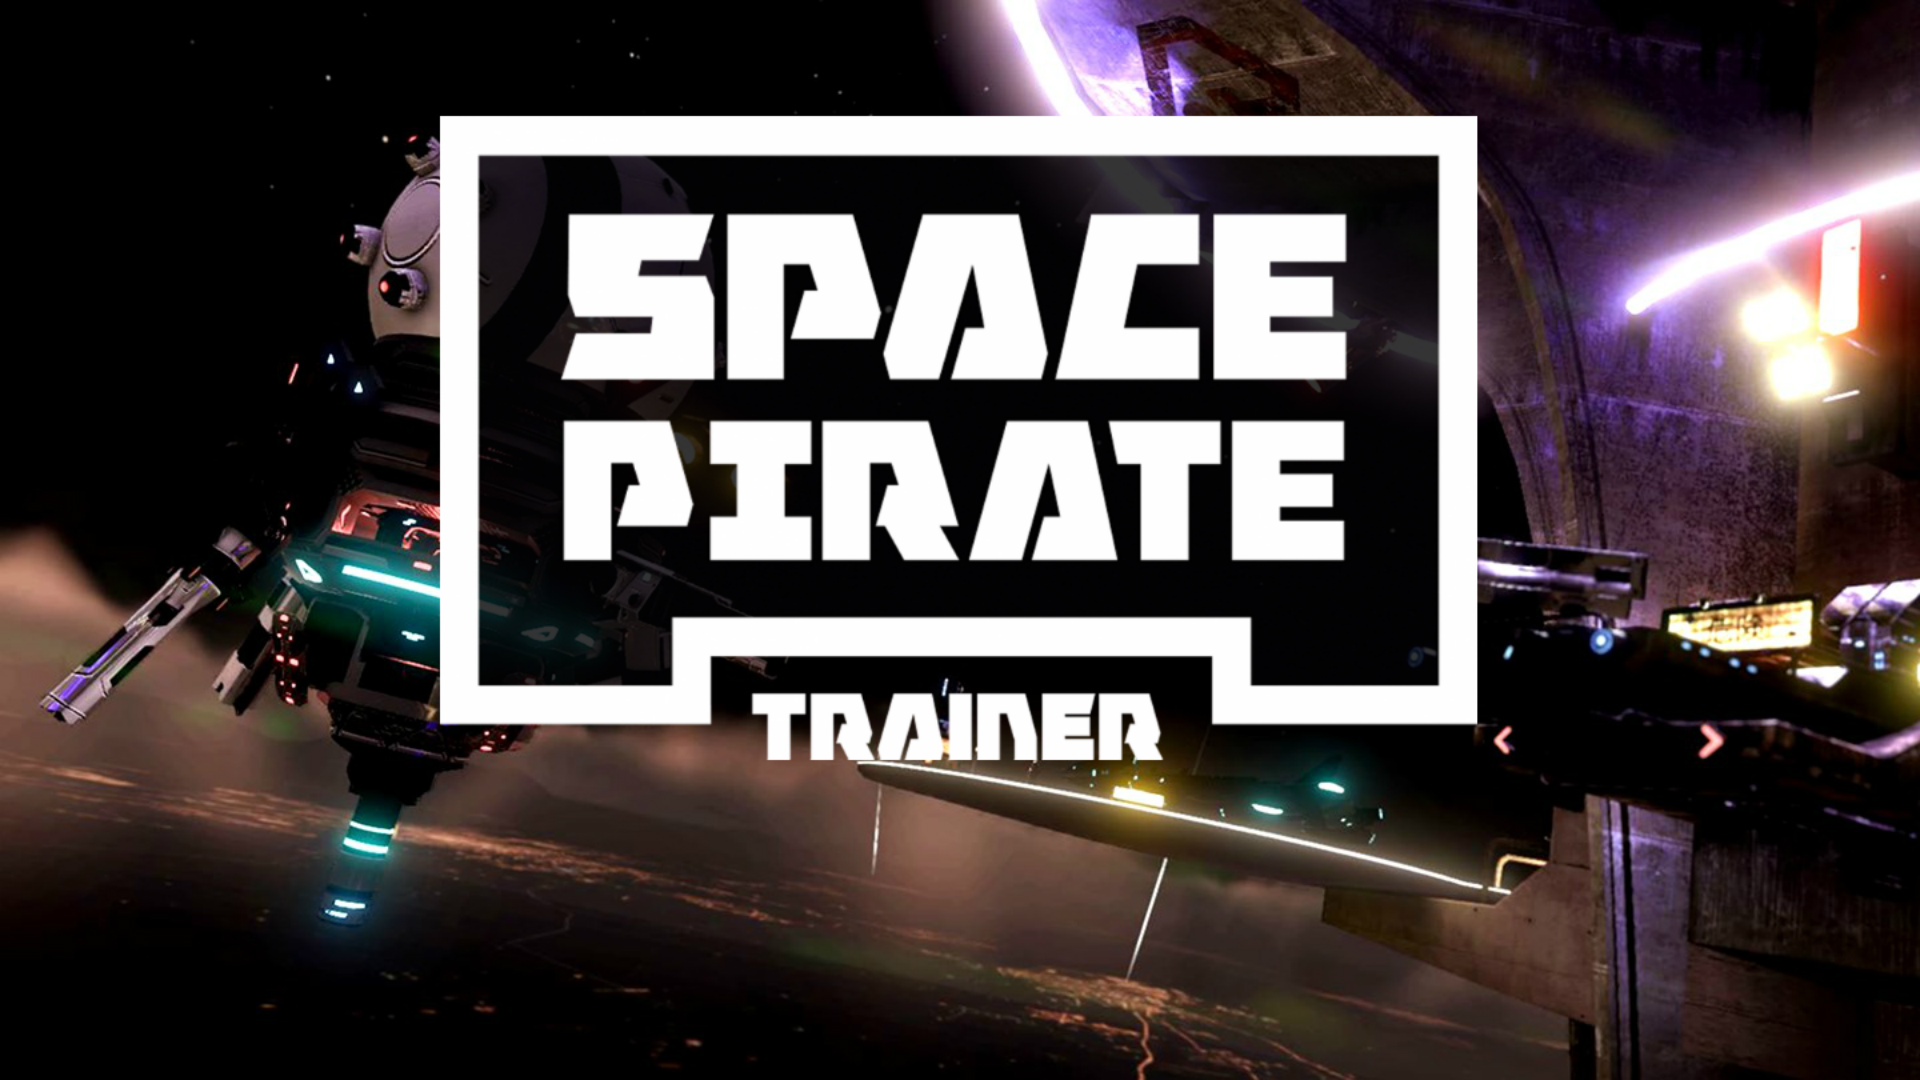 VR Event Booth Games: Space Pirate Trainer Review